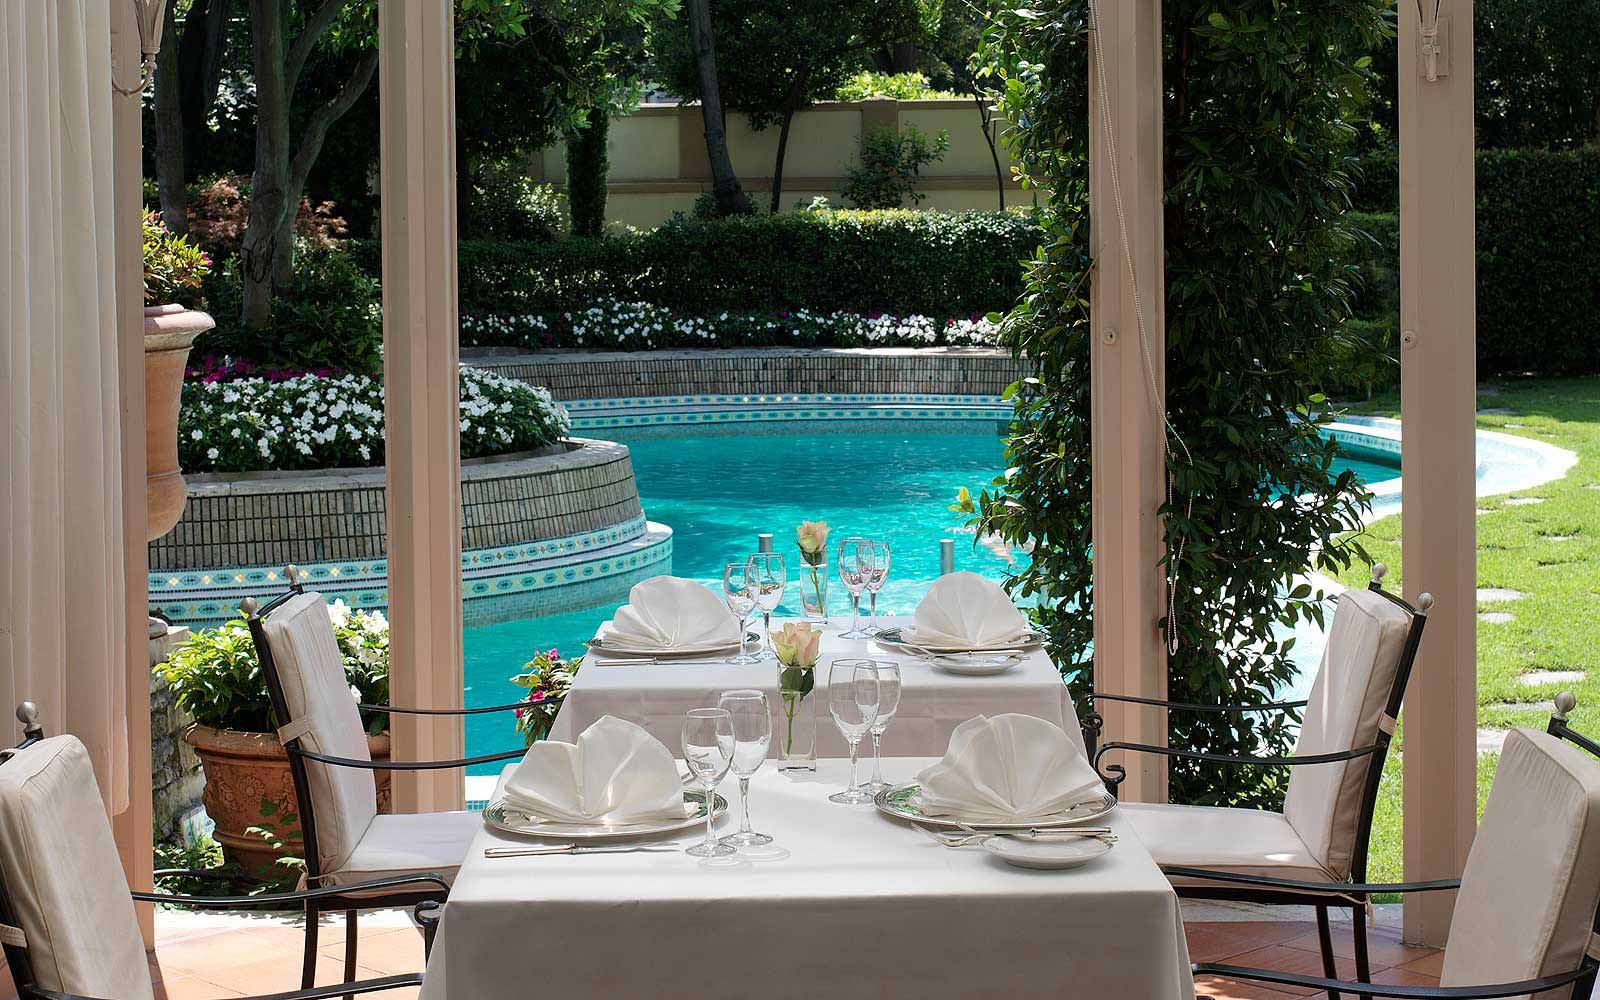 Lunch by the pool at Grand Hotel Villa Medici